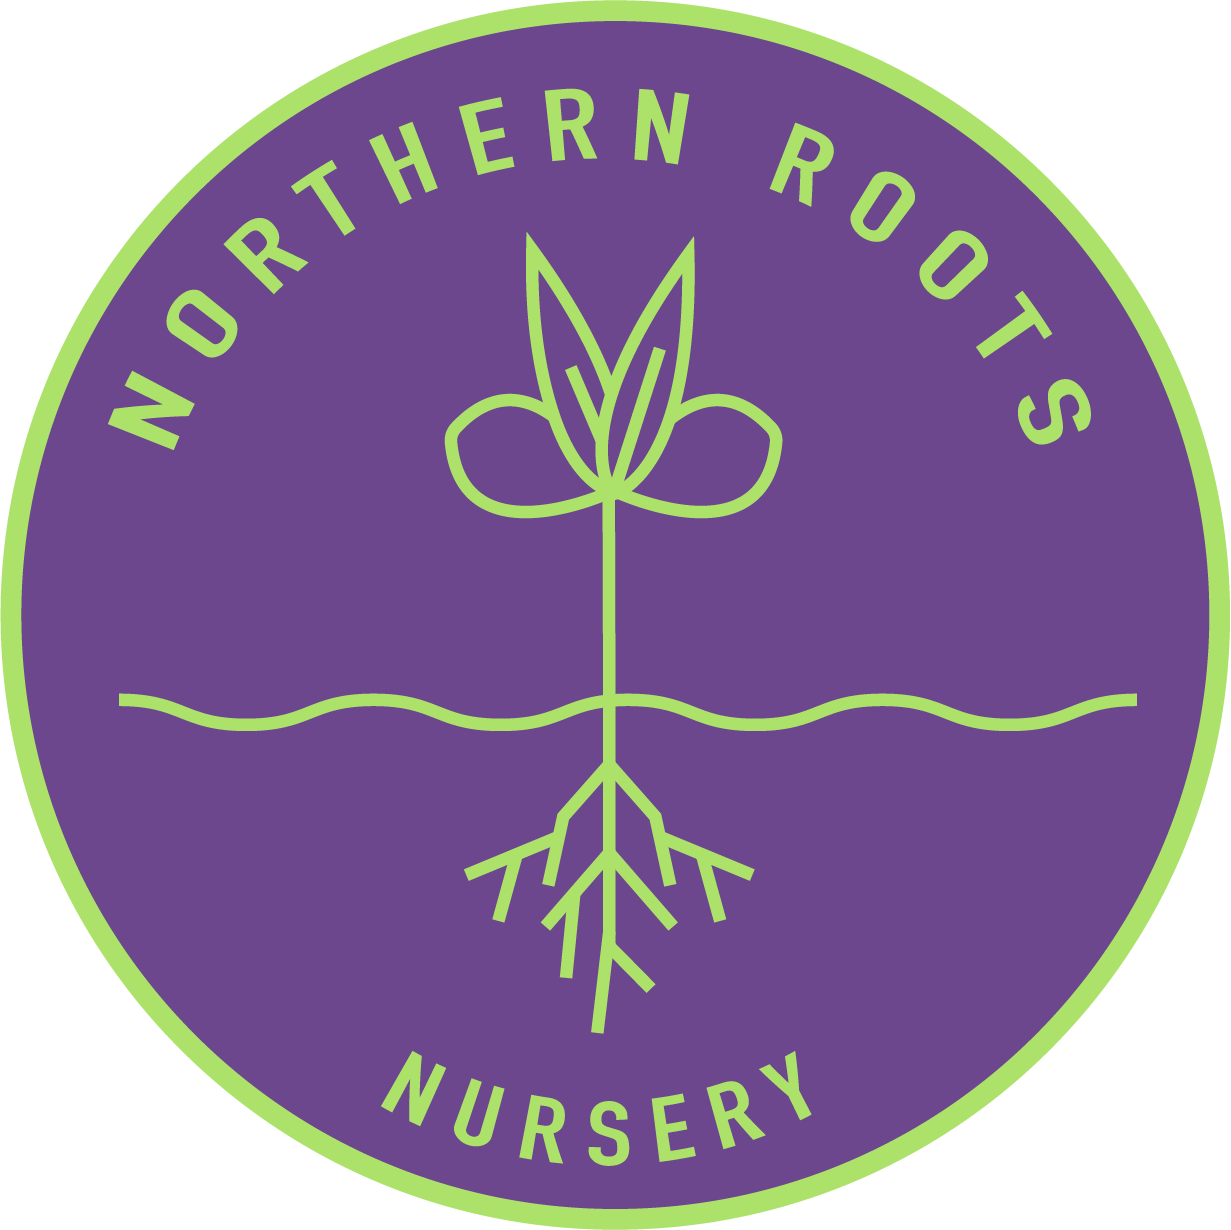 Northern Roots Nursery